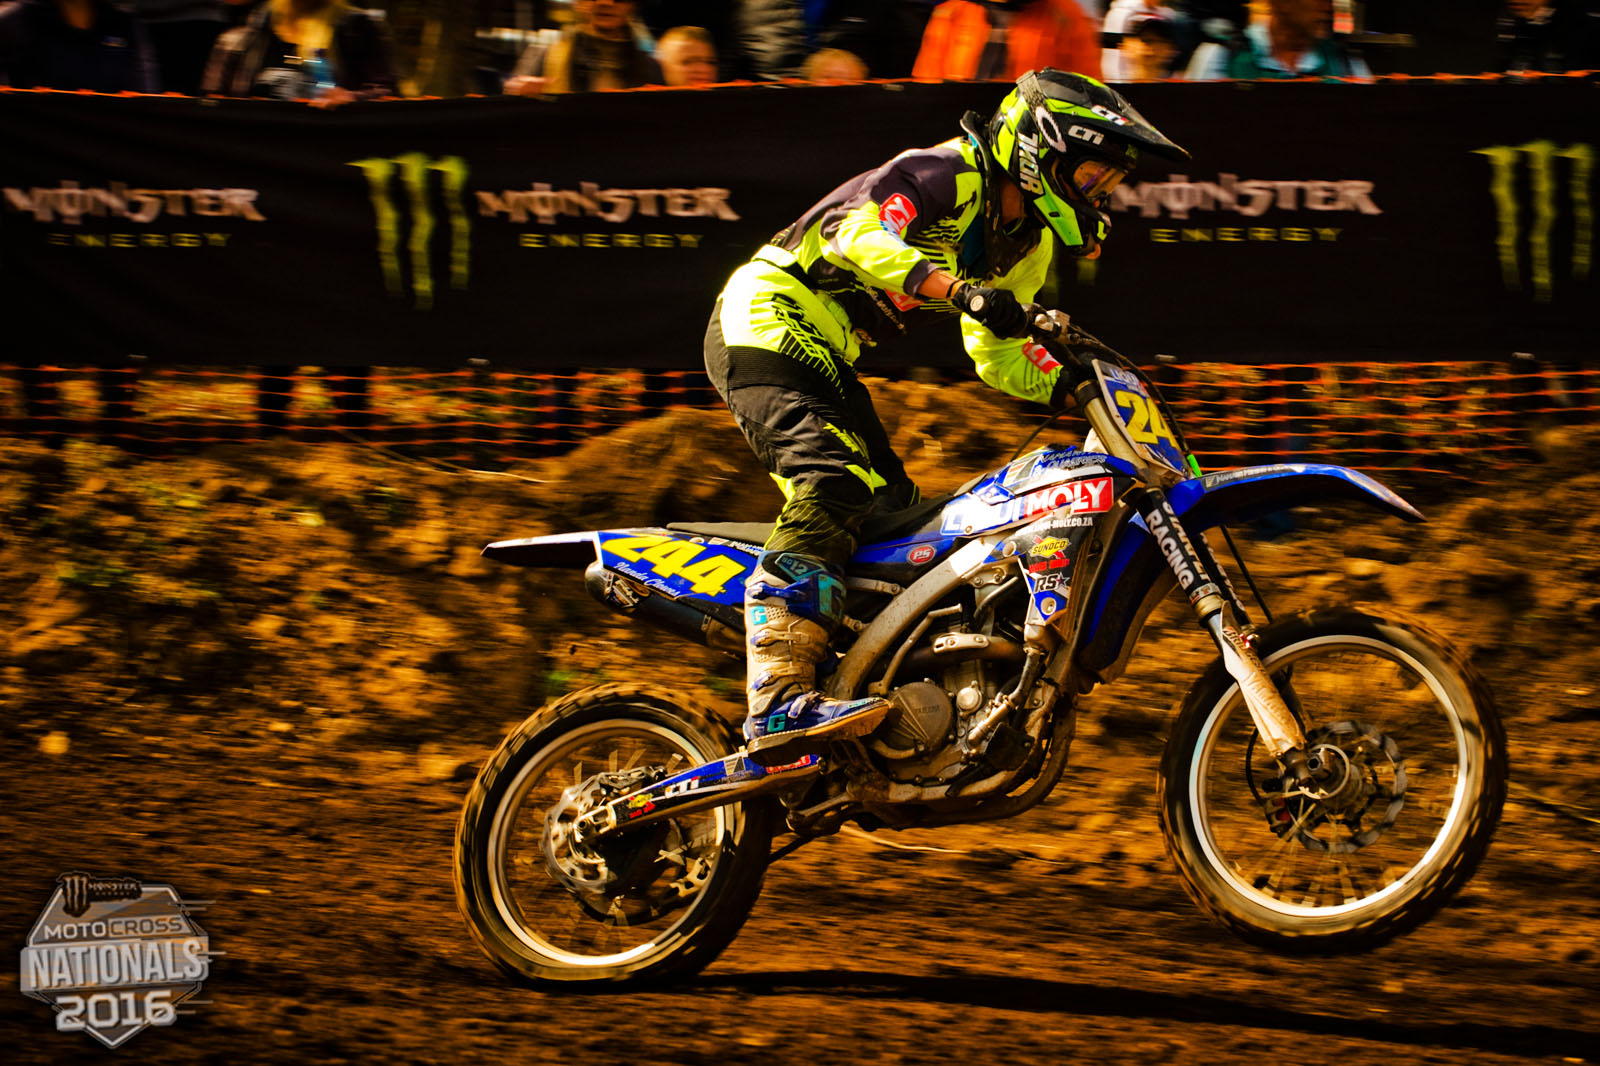 Nanda Clowes taking the win in the Ladies division at round 4 of the SA MX Nationals